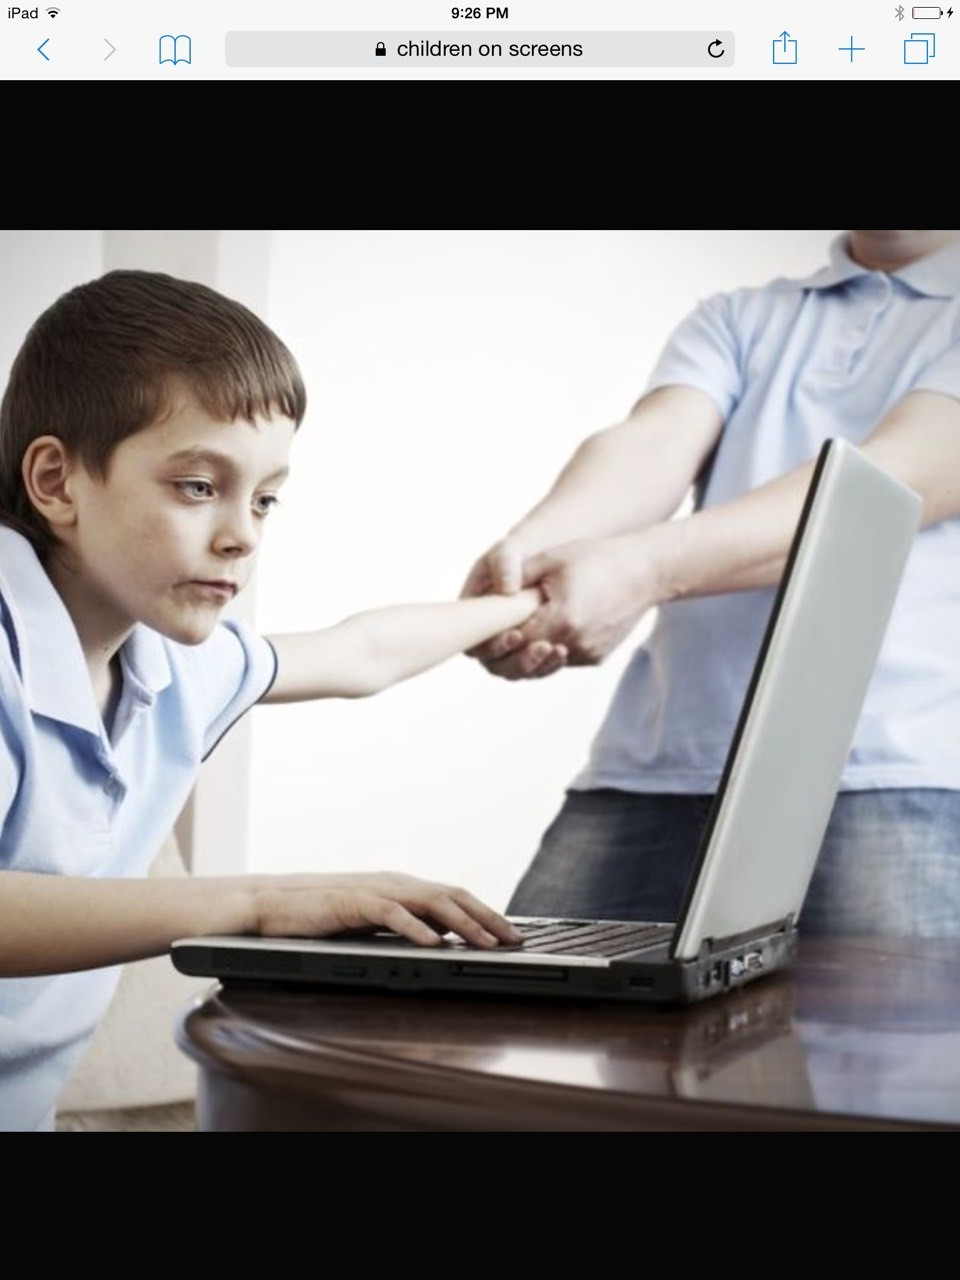 Child takes to much time staring at screen causes extreme overweighting